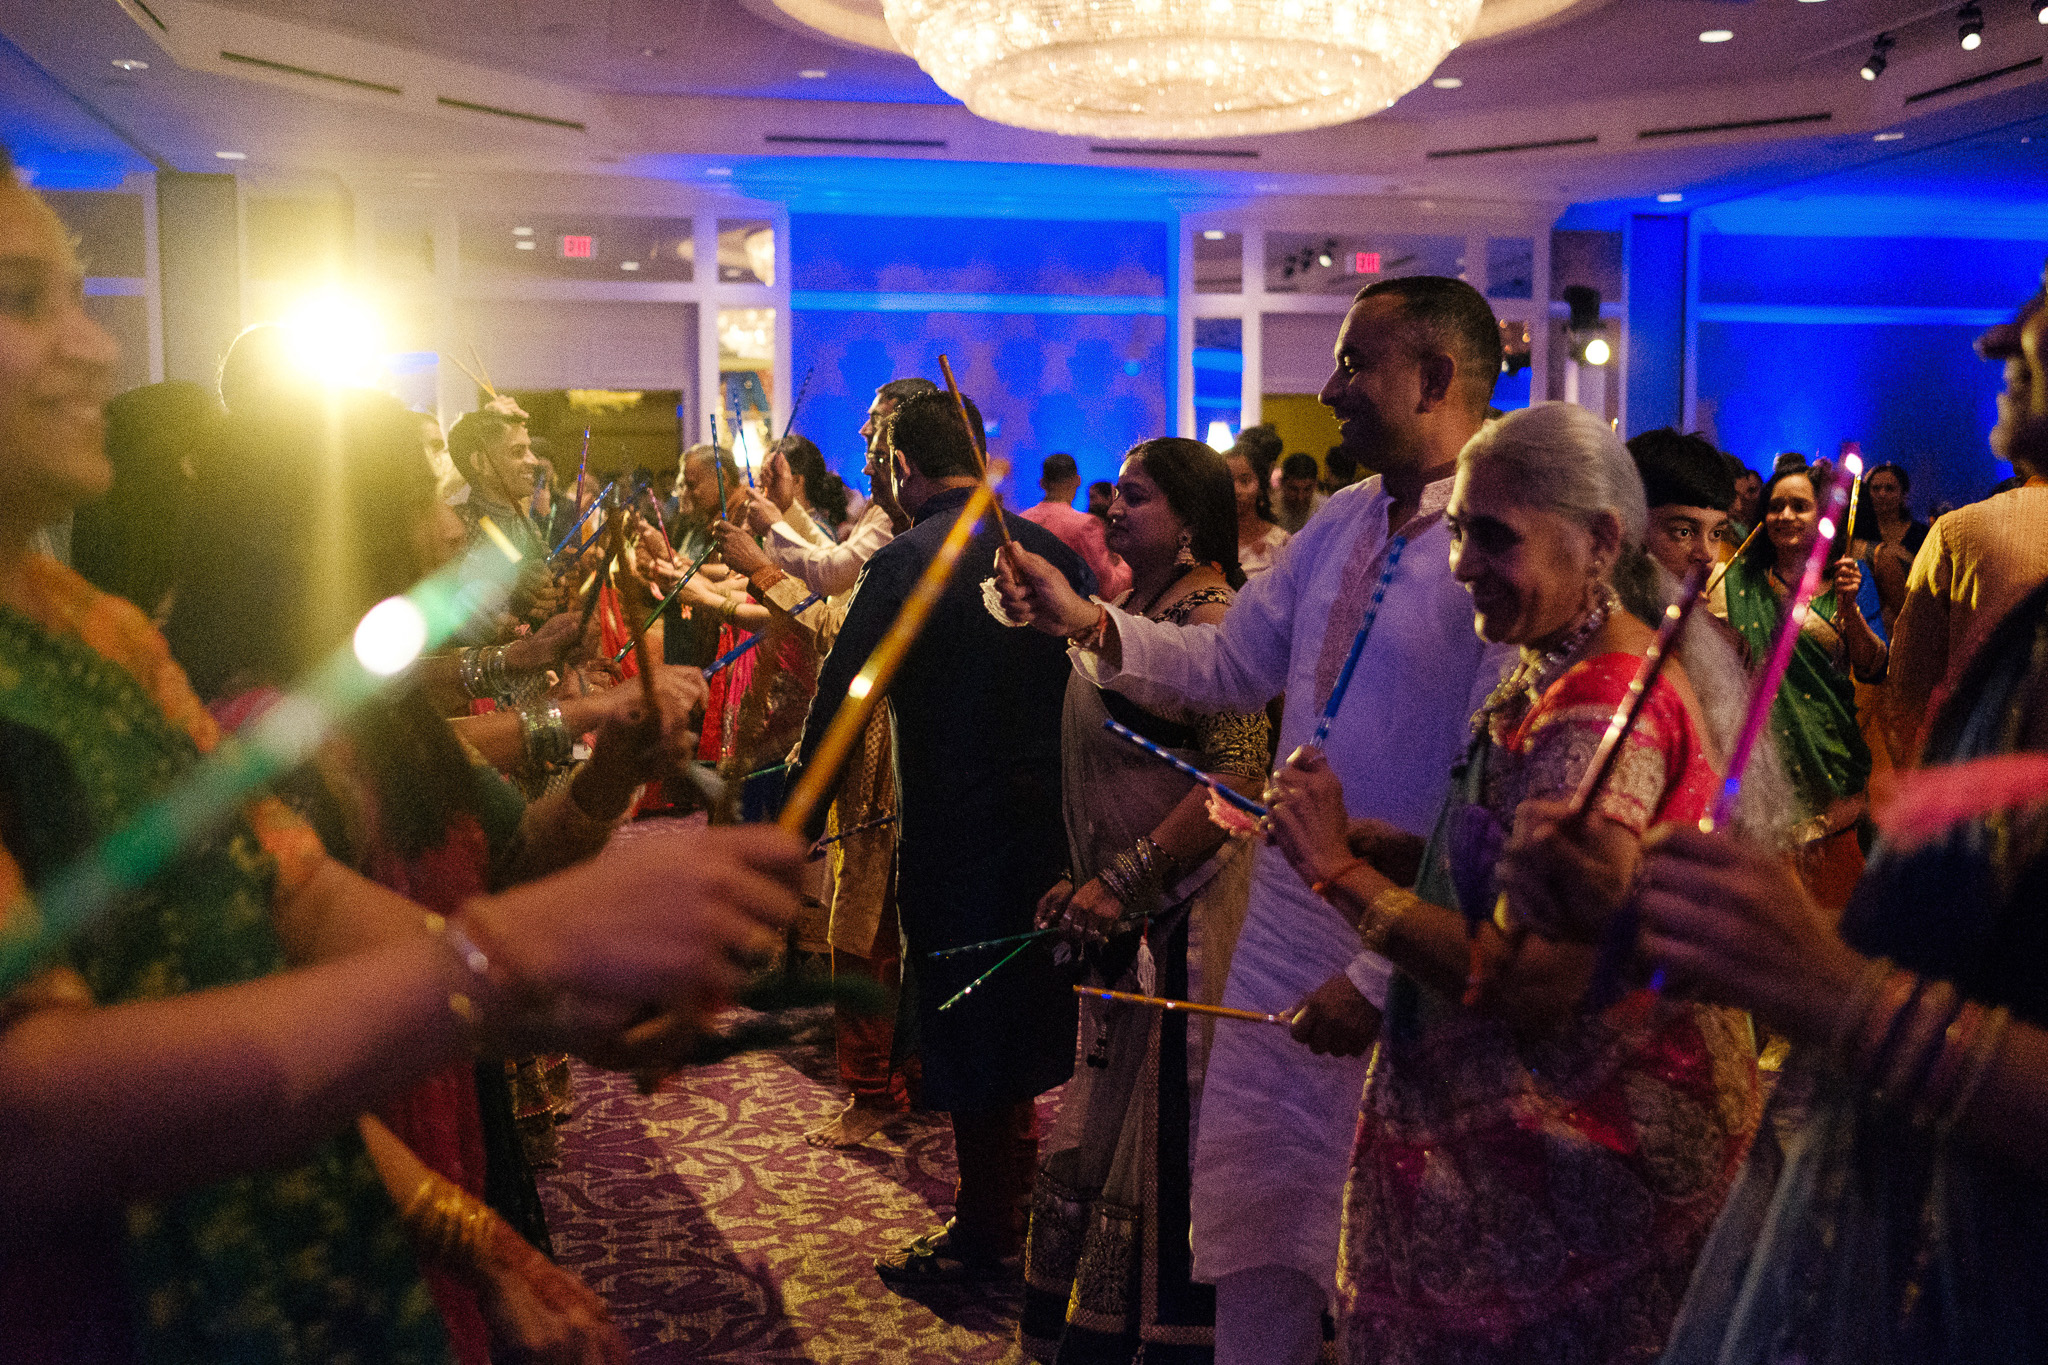 Indian wedding garba at the hilton city center in charlotte nc